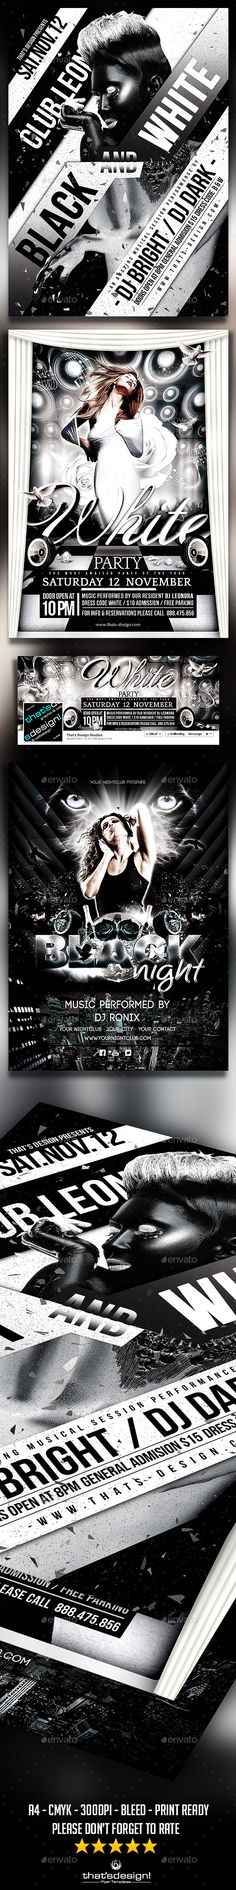 artistic hip-hop dj or band singer music flyer template concert - black and white flyer template